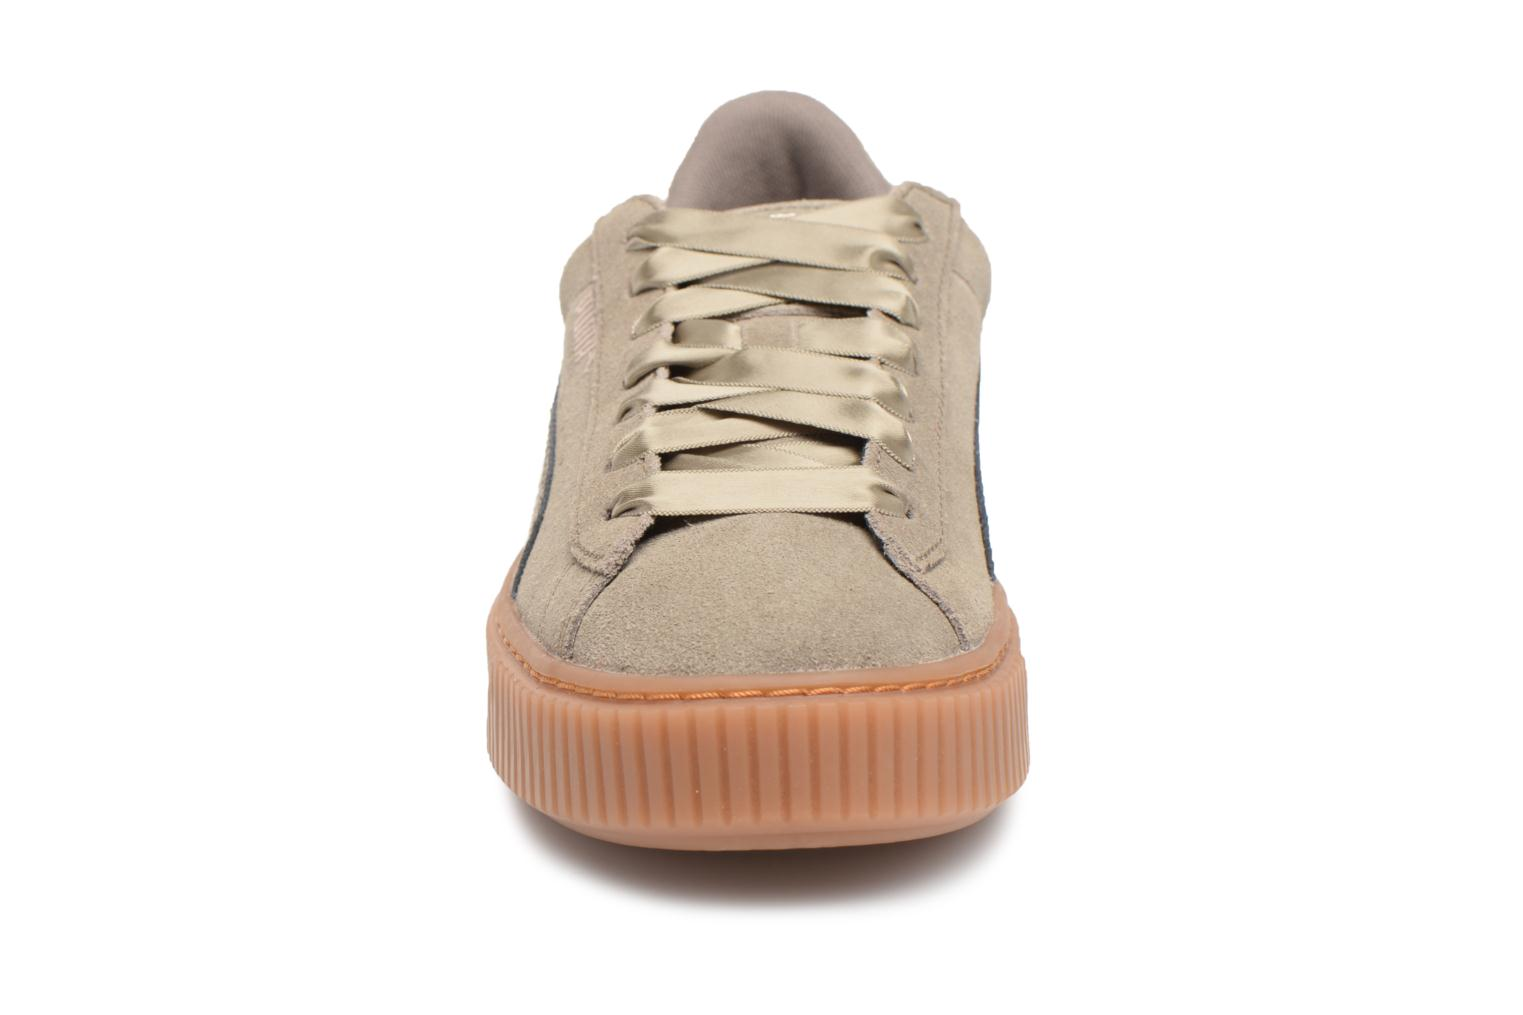 Suede Platform Bubble Wn's Bungee Cord